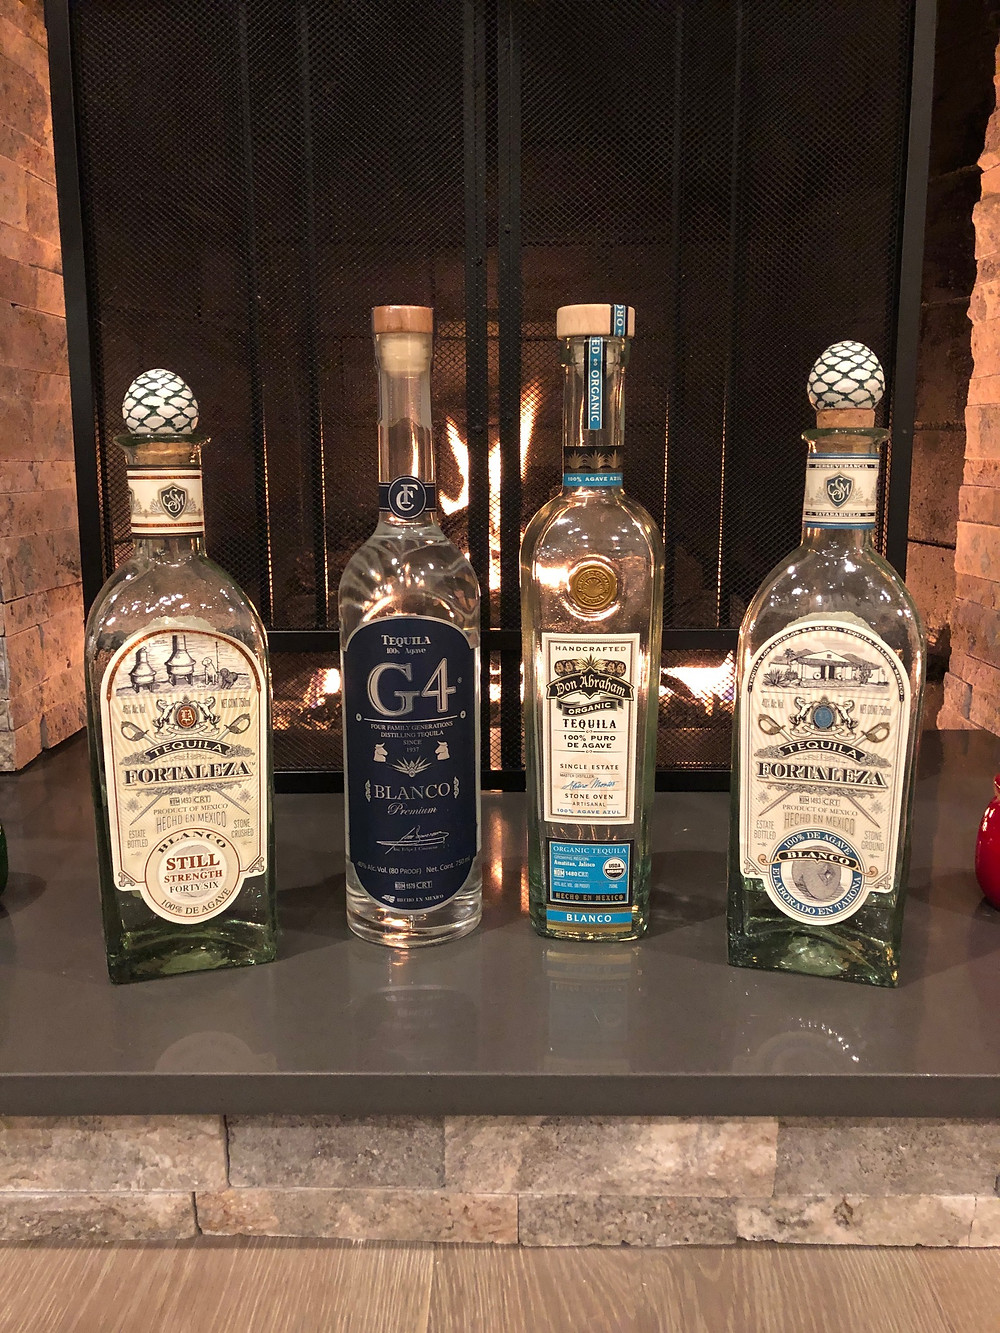 Fortaleza tequila, G4 Tequila, Don Abraham tequila